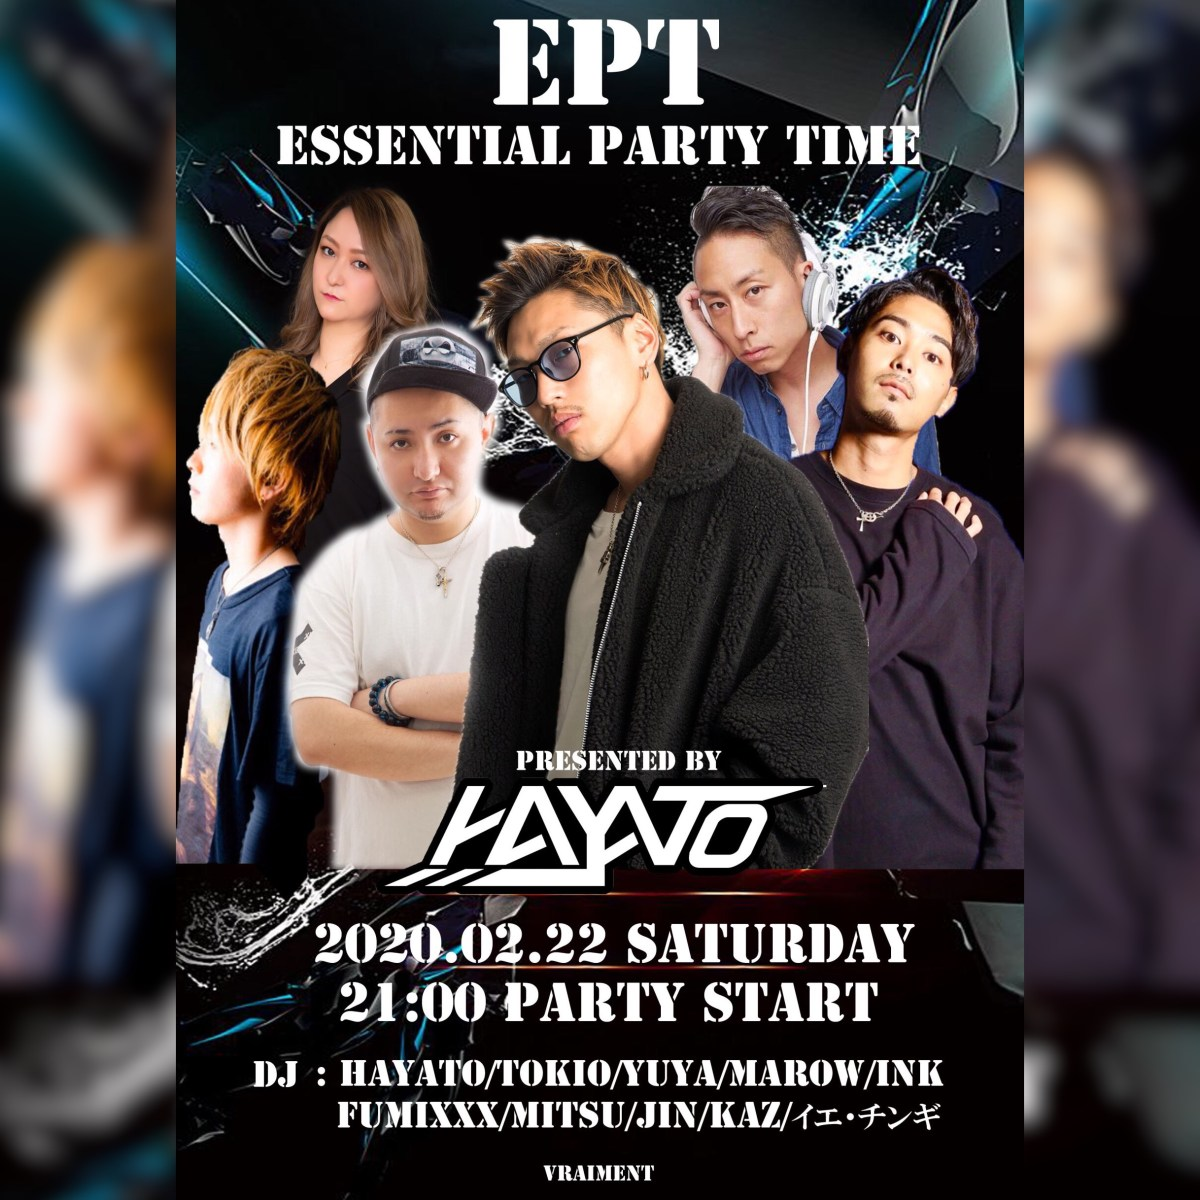 【2月22日】E.P.T 〜 ESSENTIAL PARTY TIME